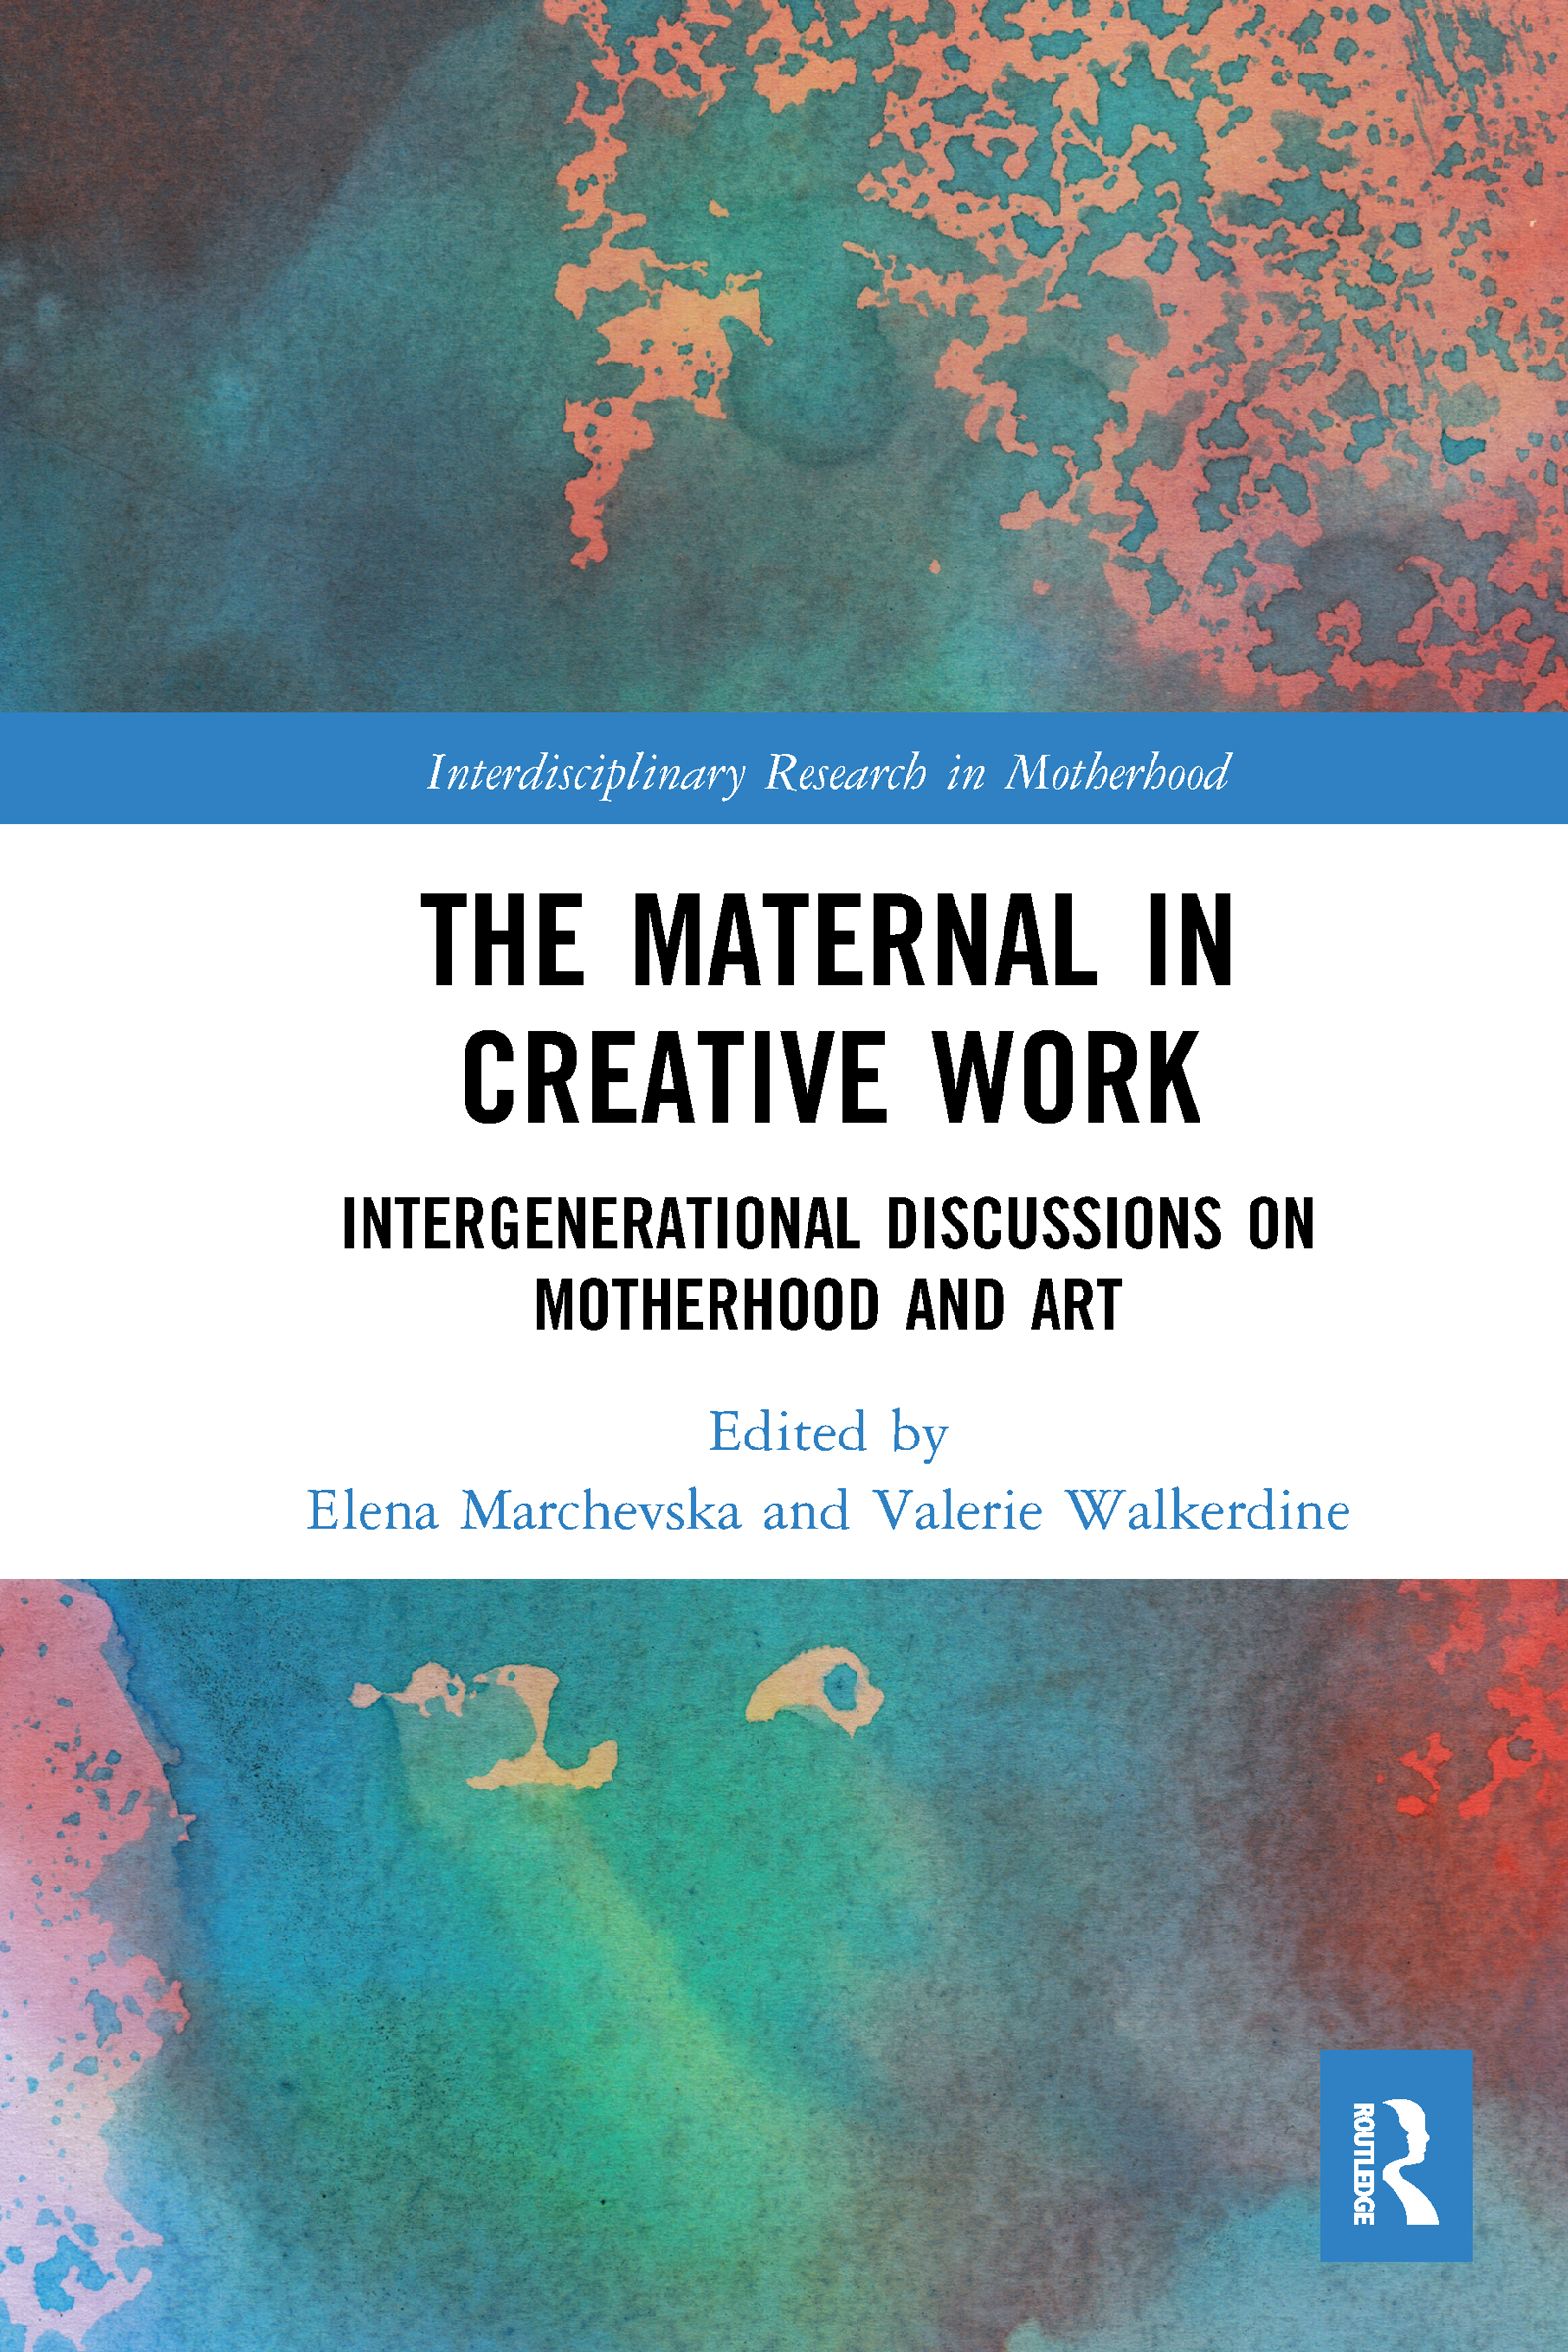 The Maternal in Creative Work